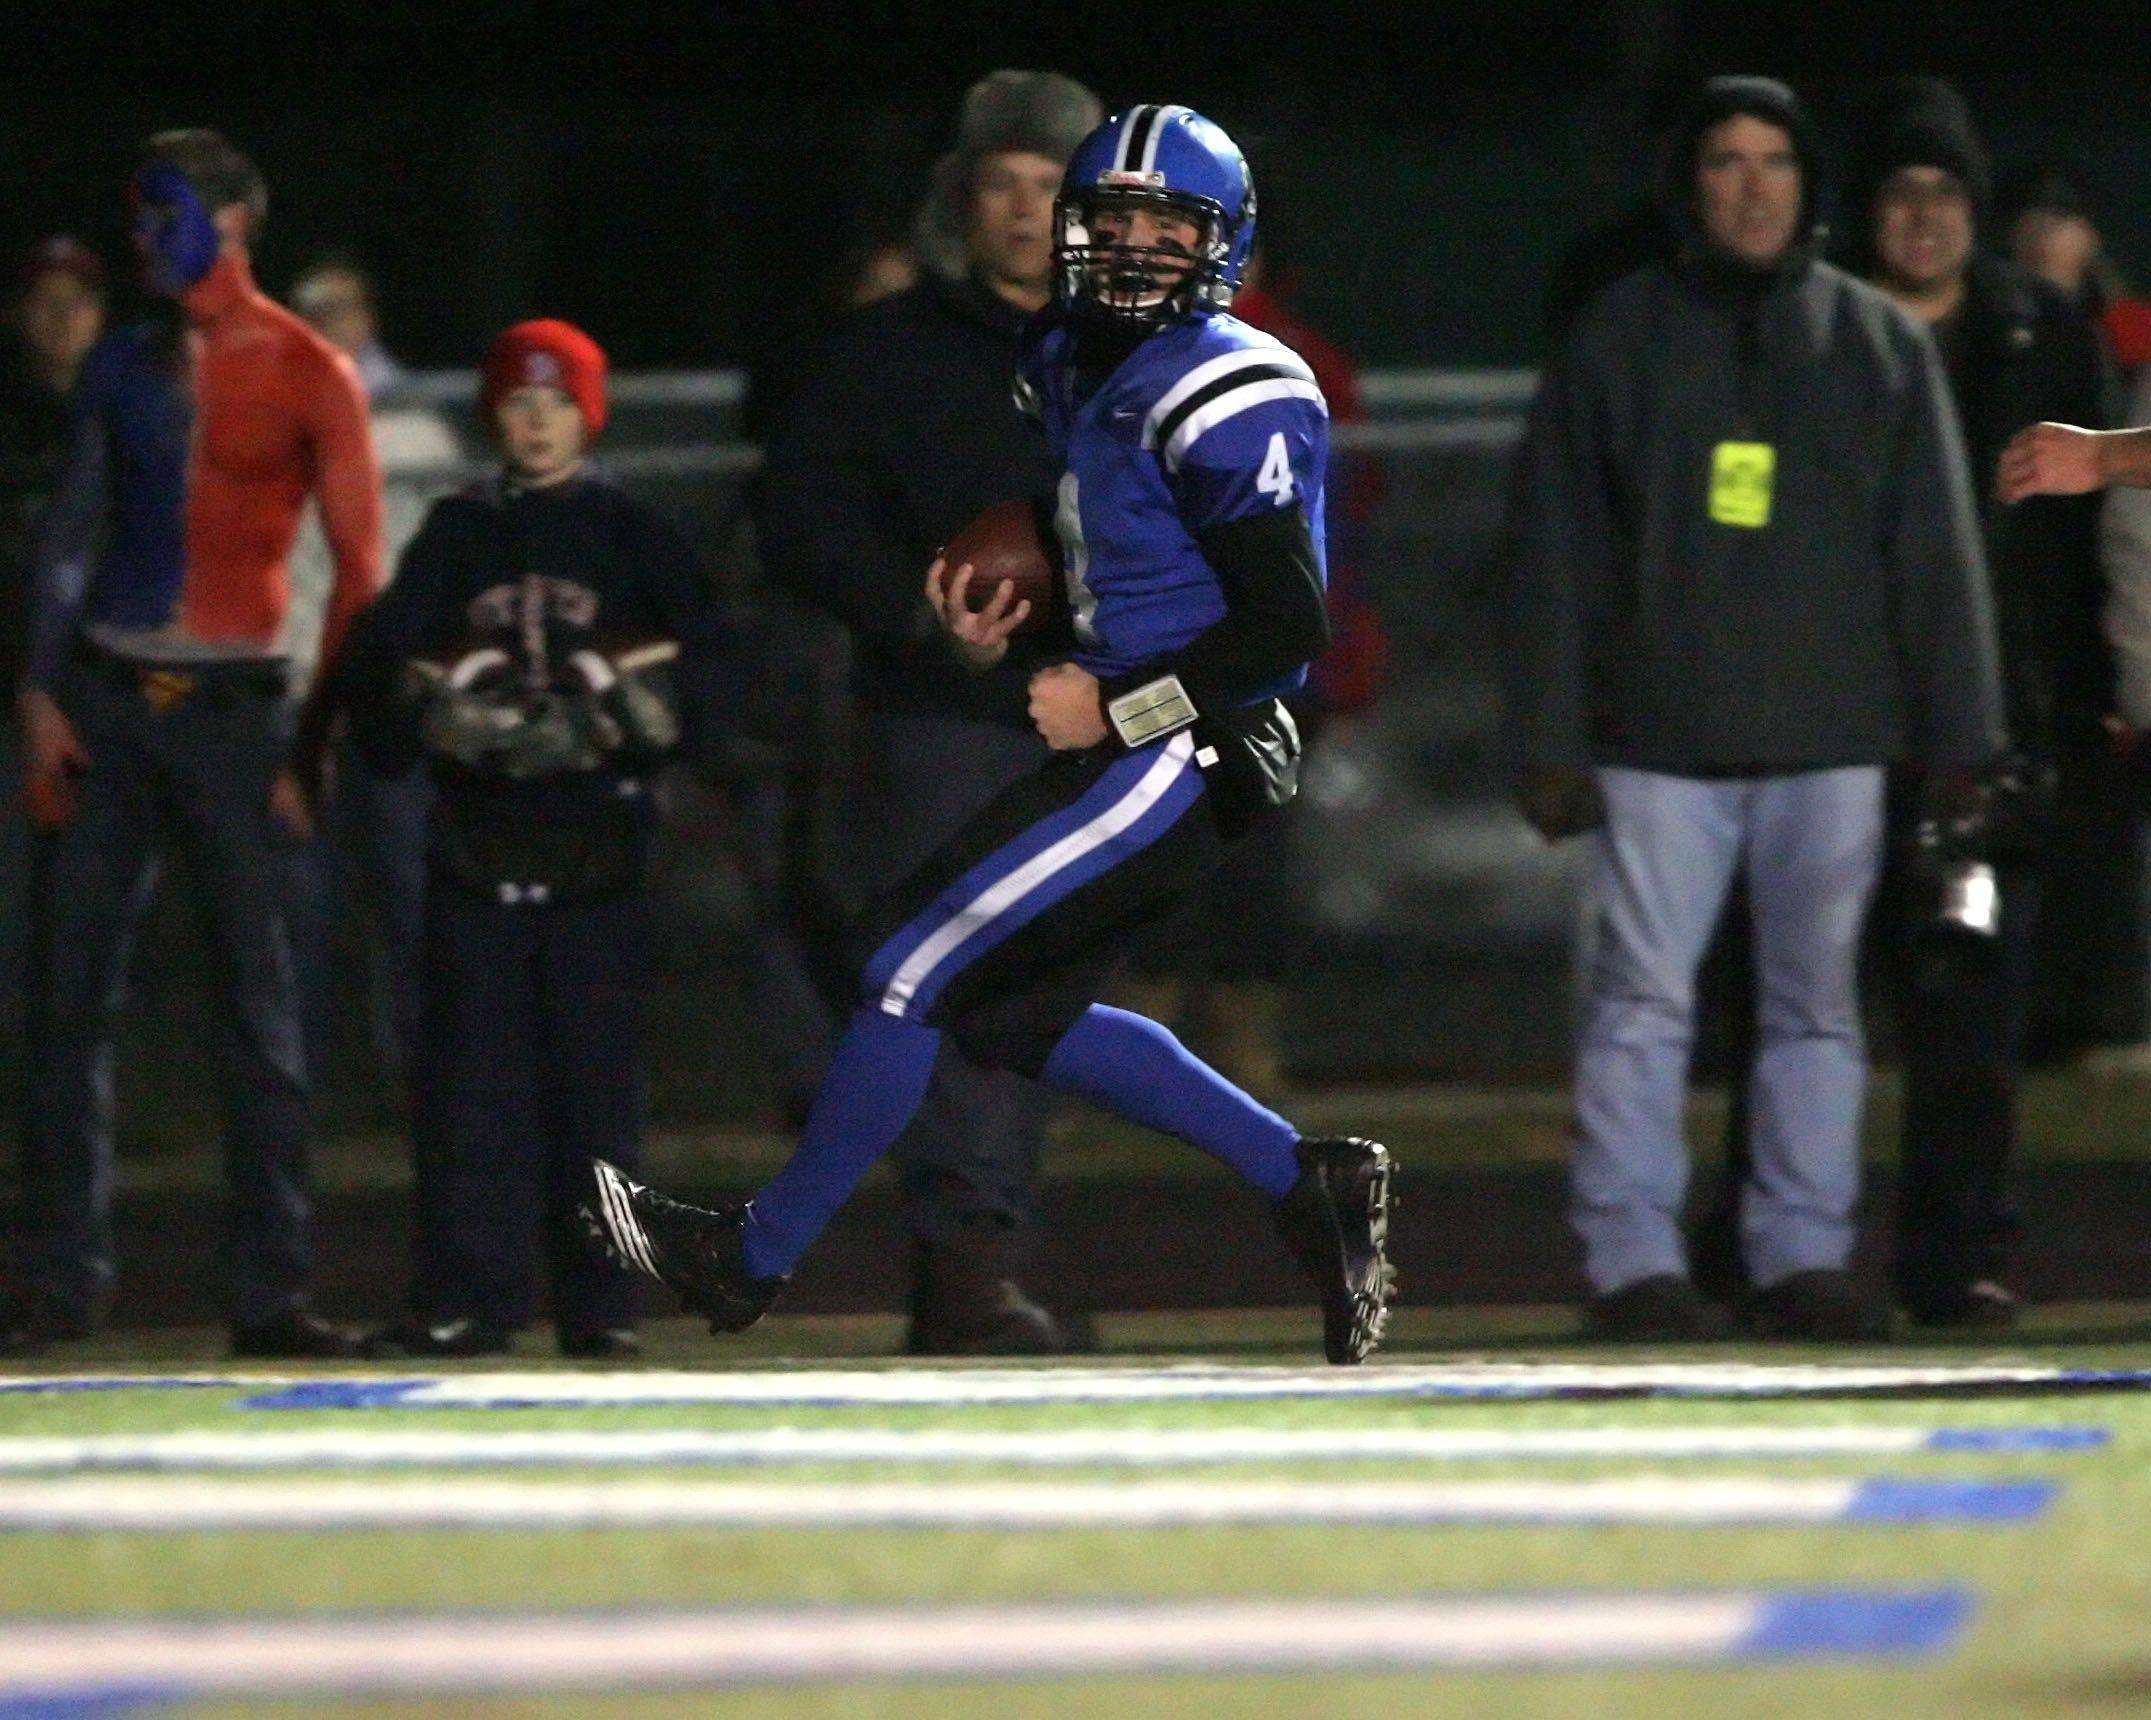 Playoffs - week four - Images from the St. Rita at Lake Zurich Class 7A state semifinal football game Saturday, November 20.